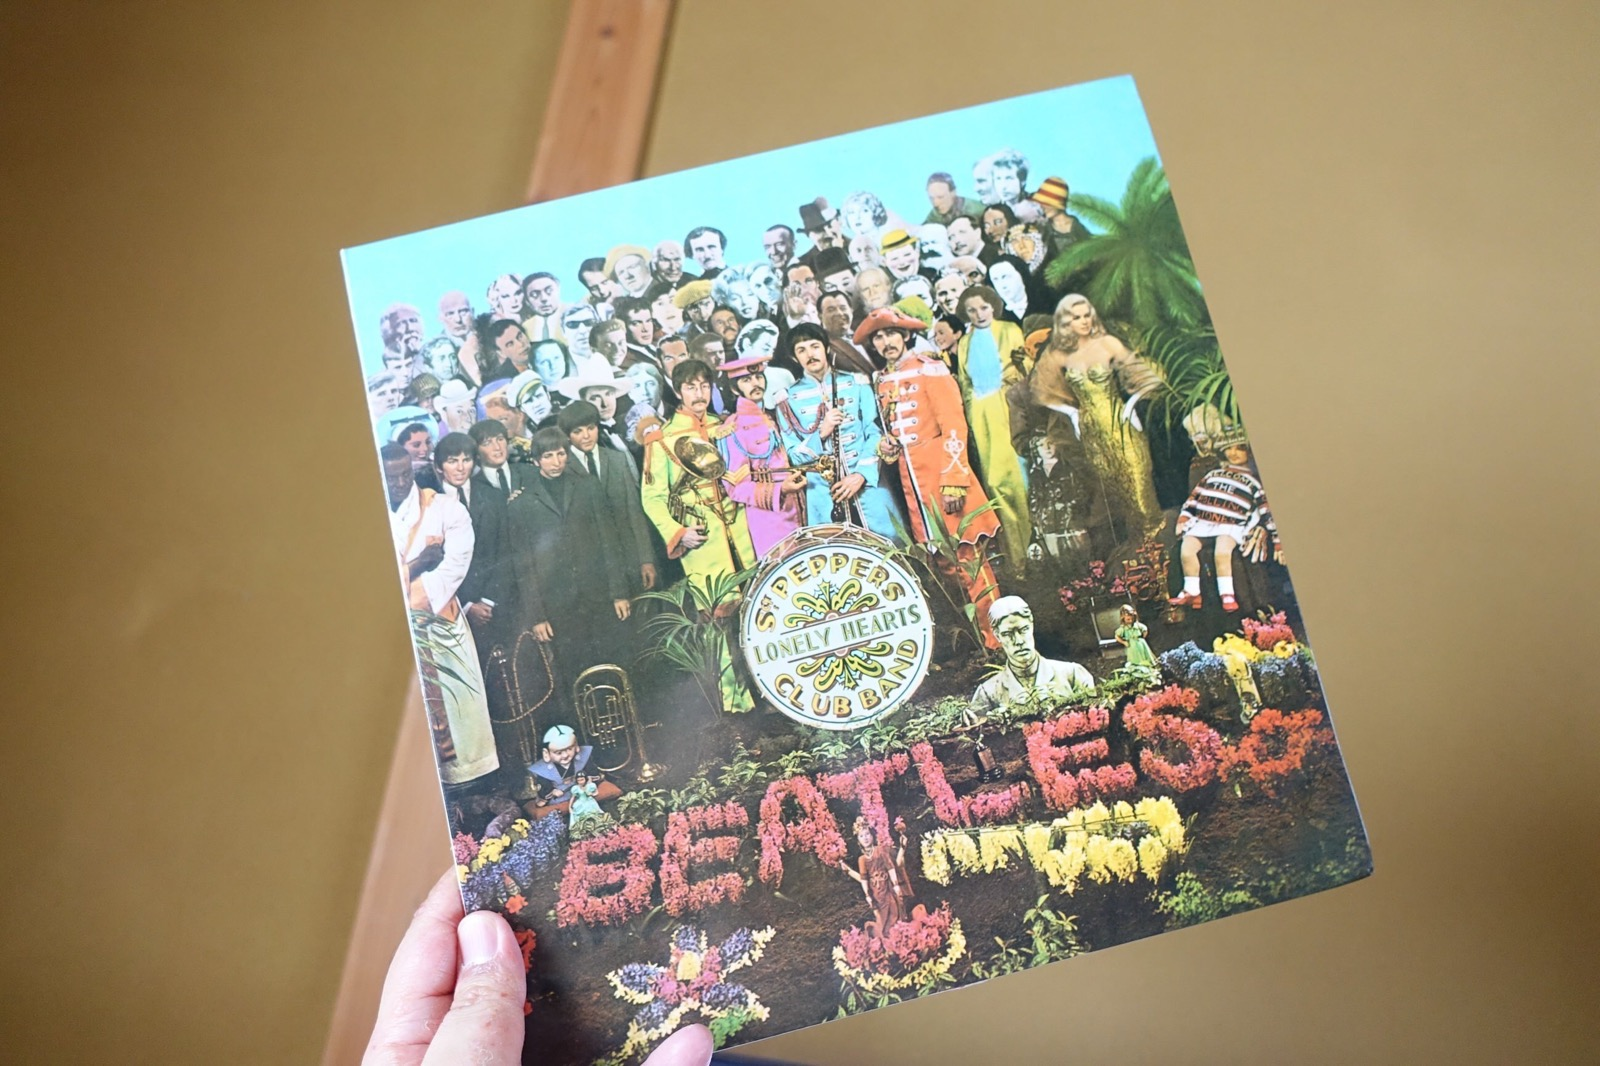 Sgt. Pepper's Lonely Hearts Club Band red